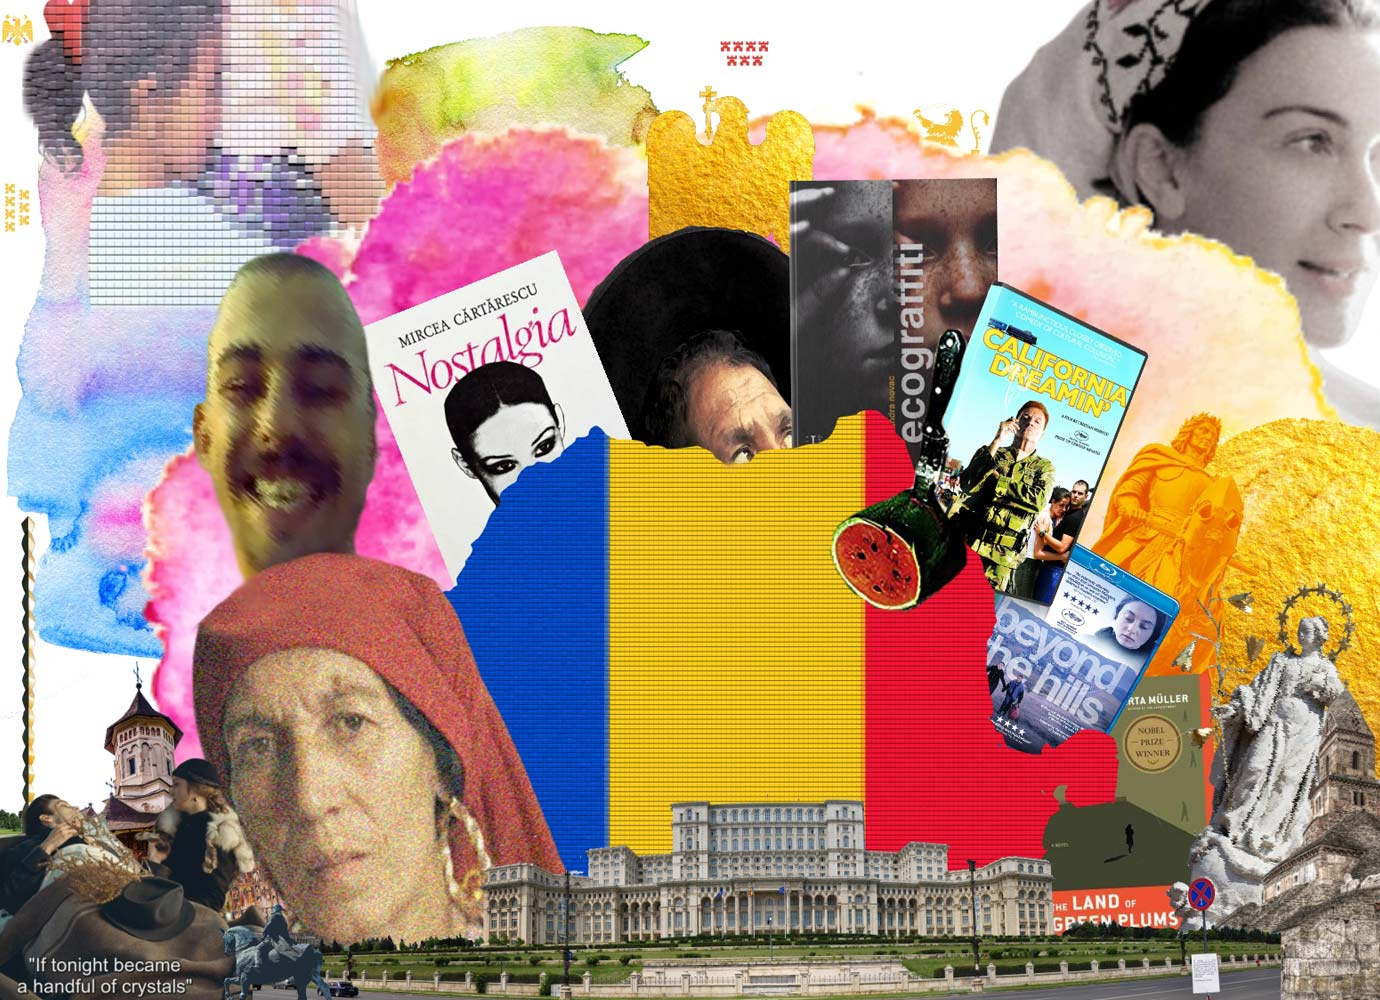 Read Romania's best contemporary writers in a special issue of literature magazine The Riveter